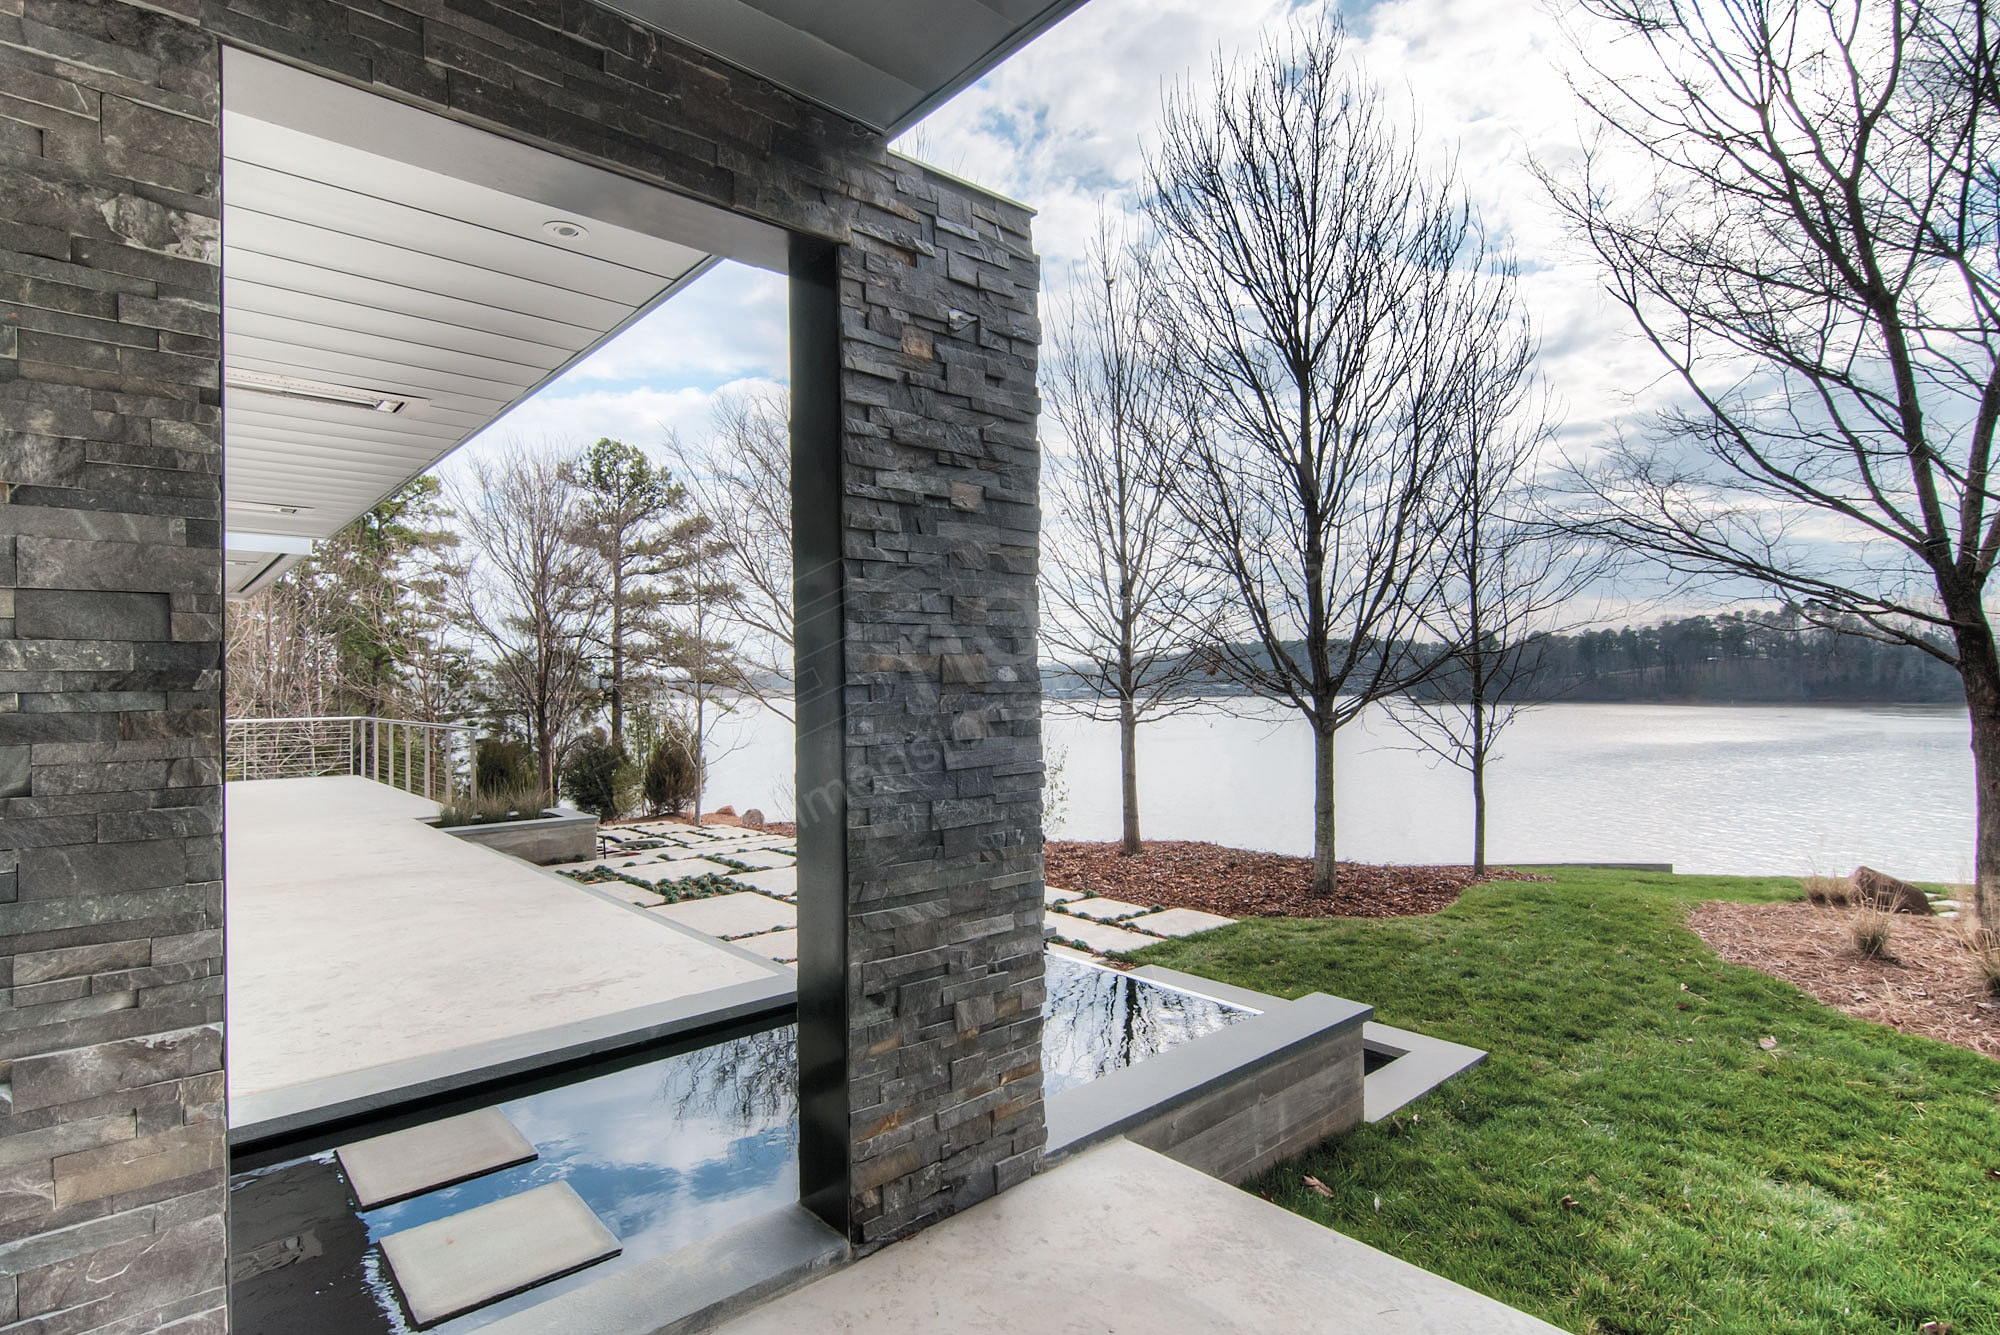 Dry stack stone veneer used exterior on a North Carolina Lake in a freeze thaw climate